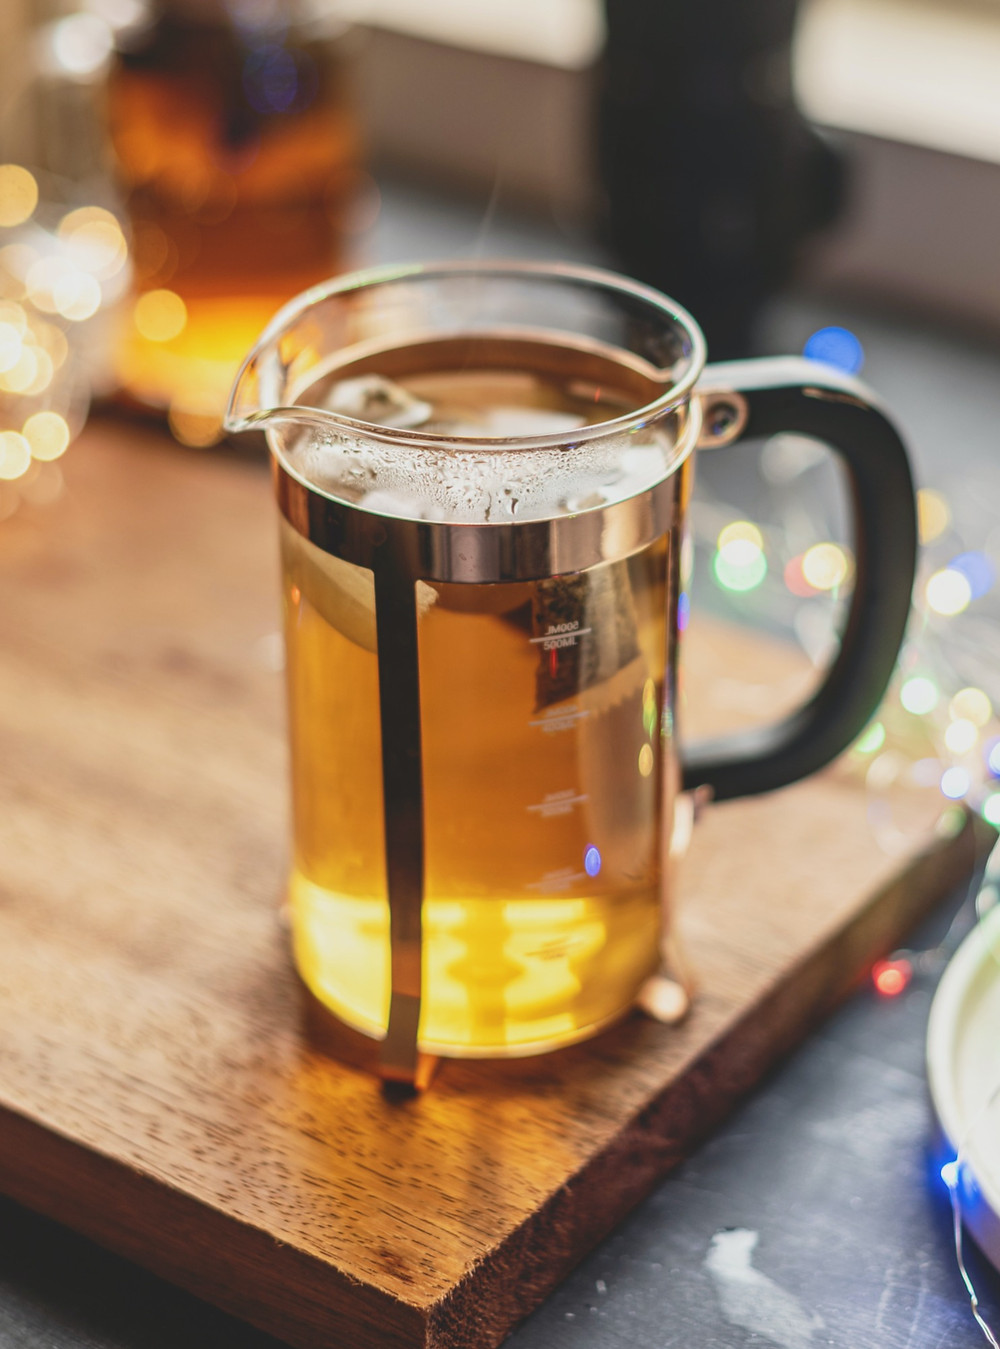 Brew your maté in a French press or teapot to discover the taste of maté.